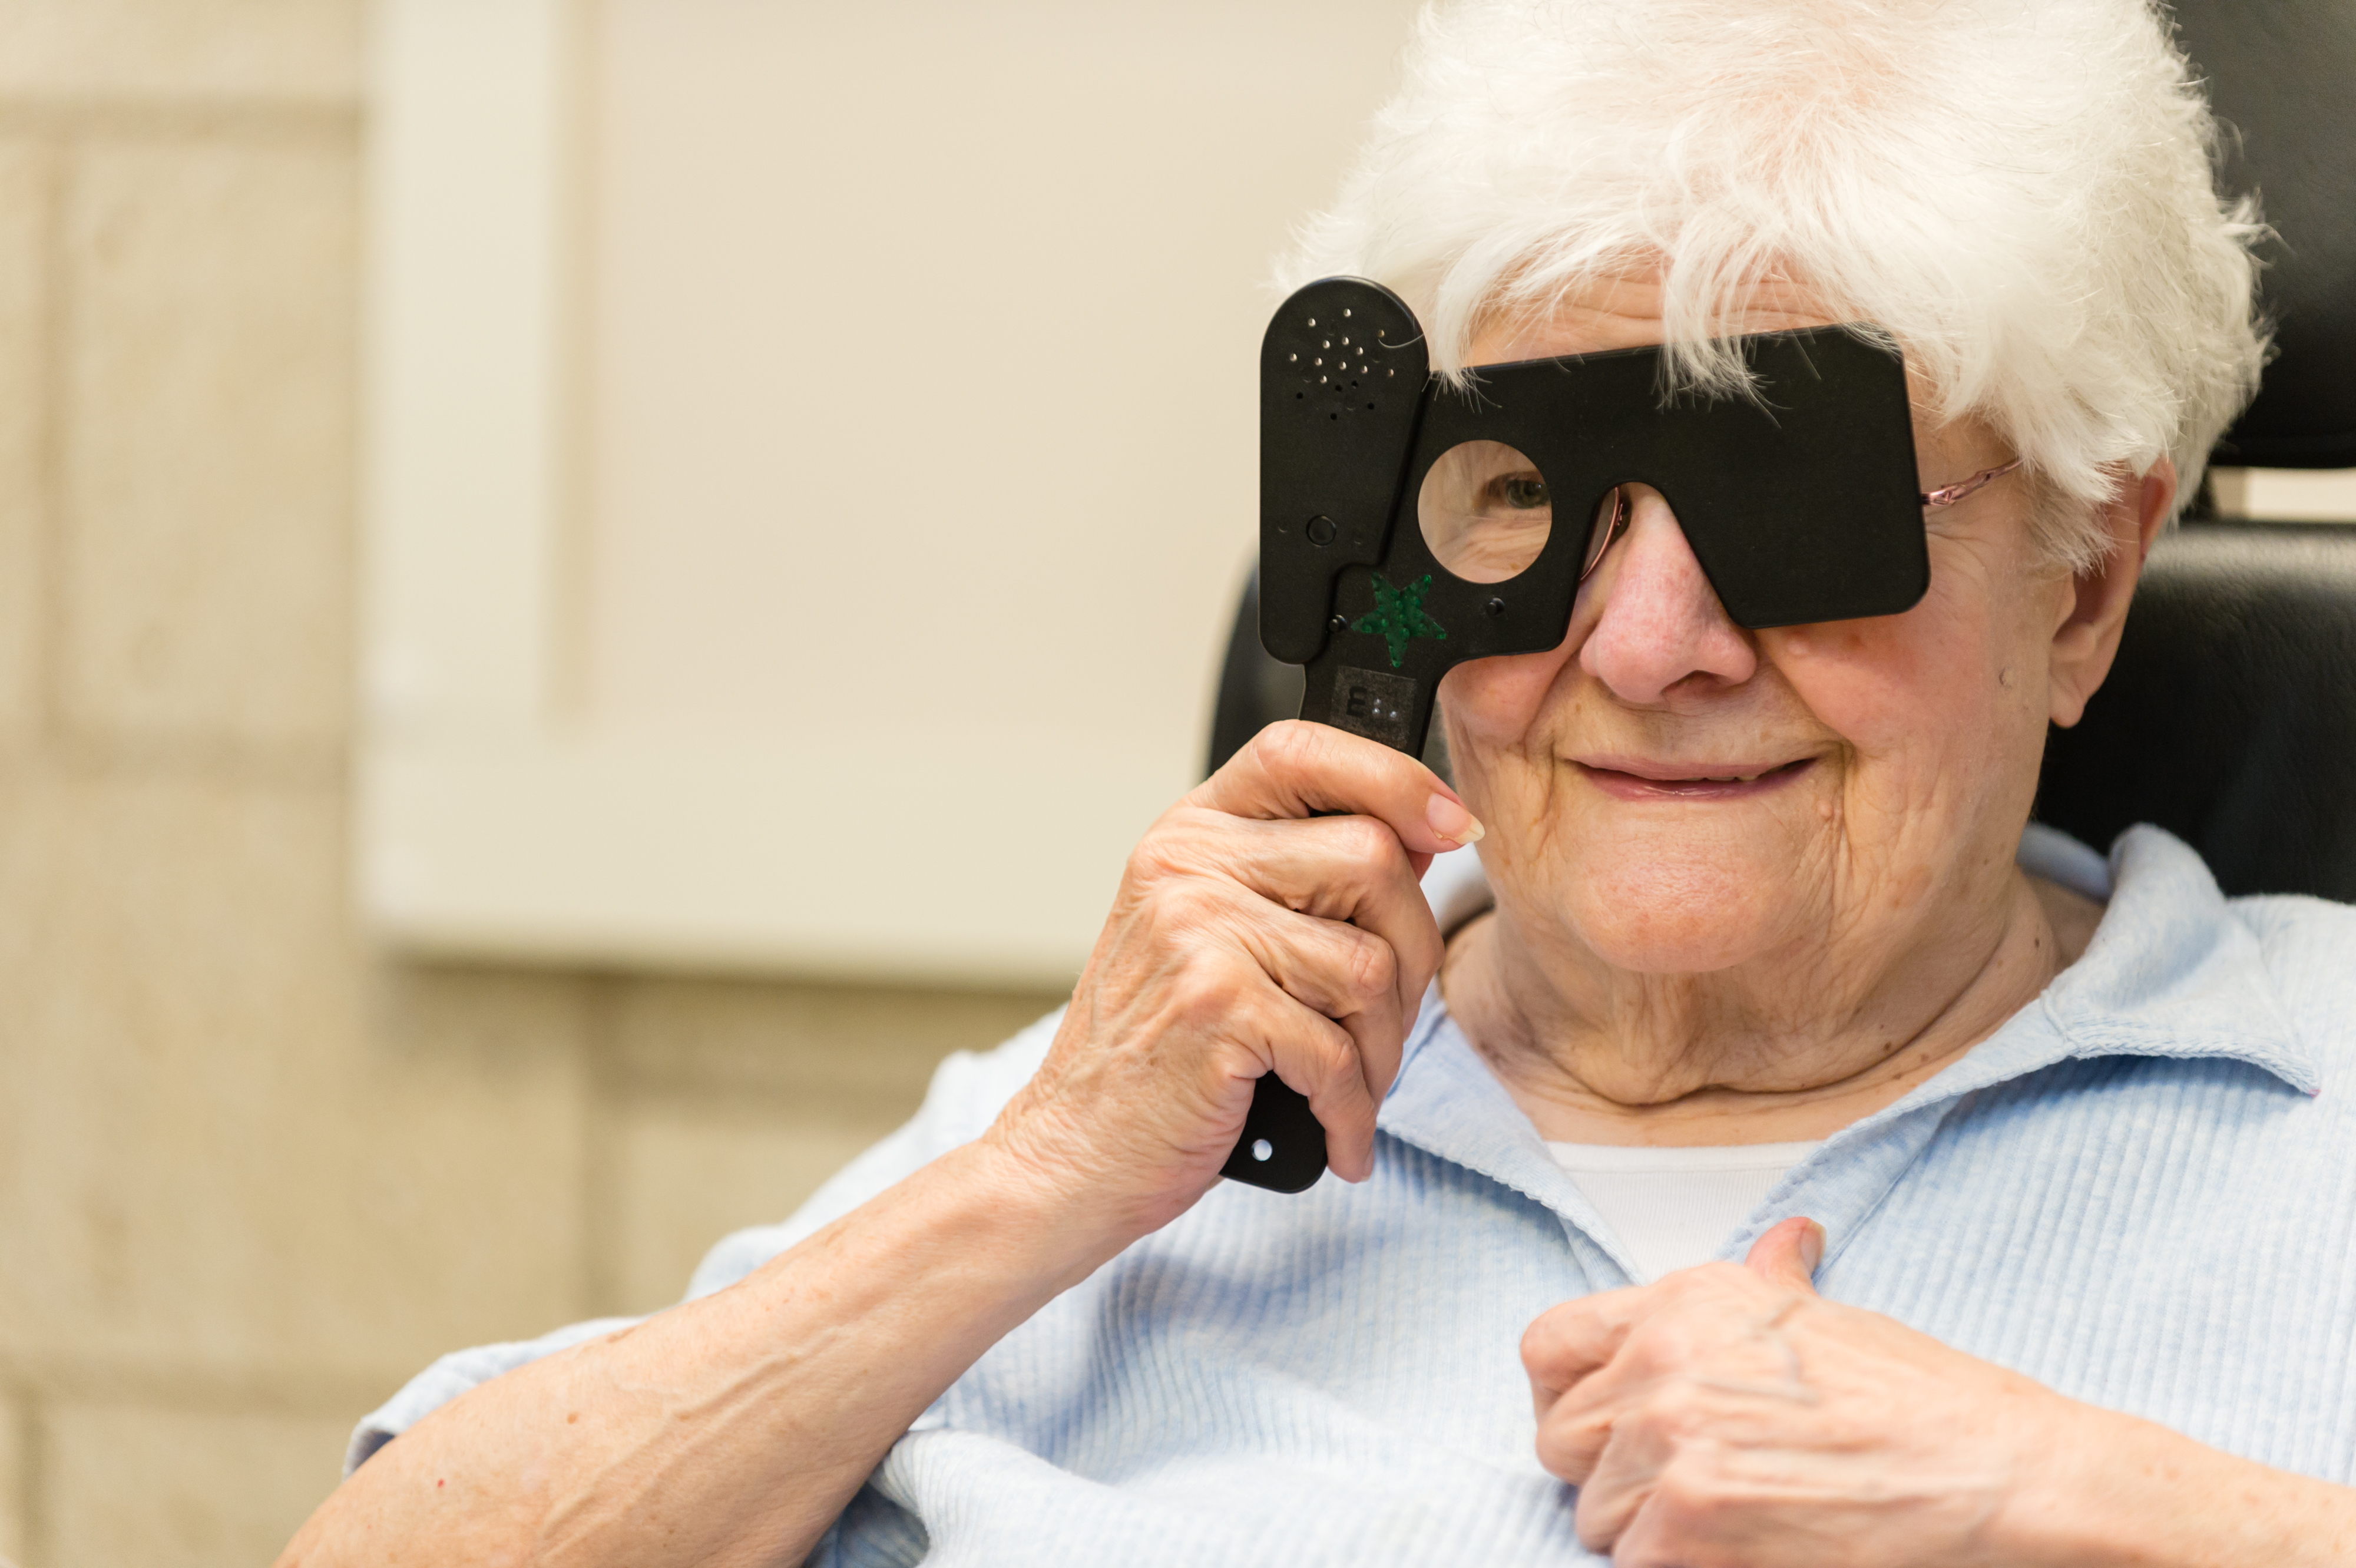 Patient in a low vision eye exam holding a tool in front of her eye